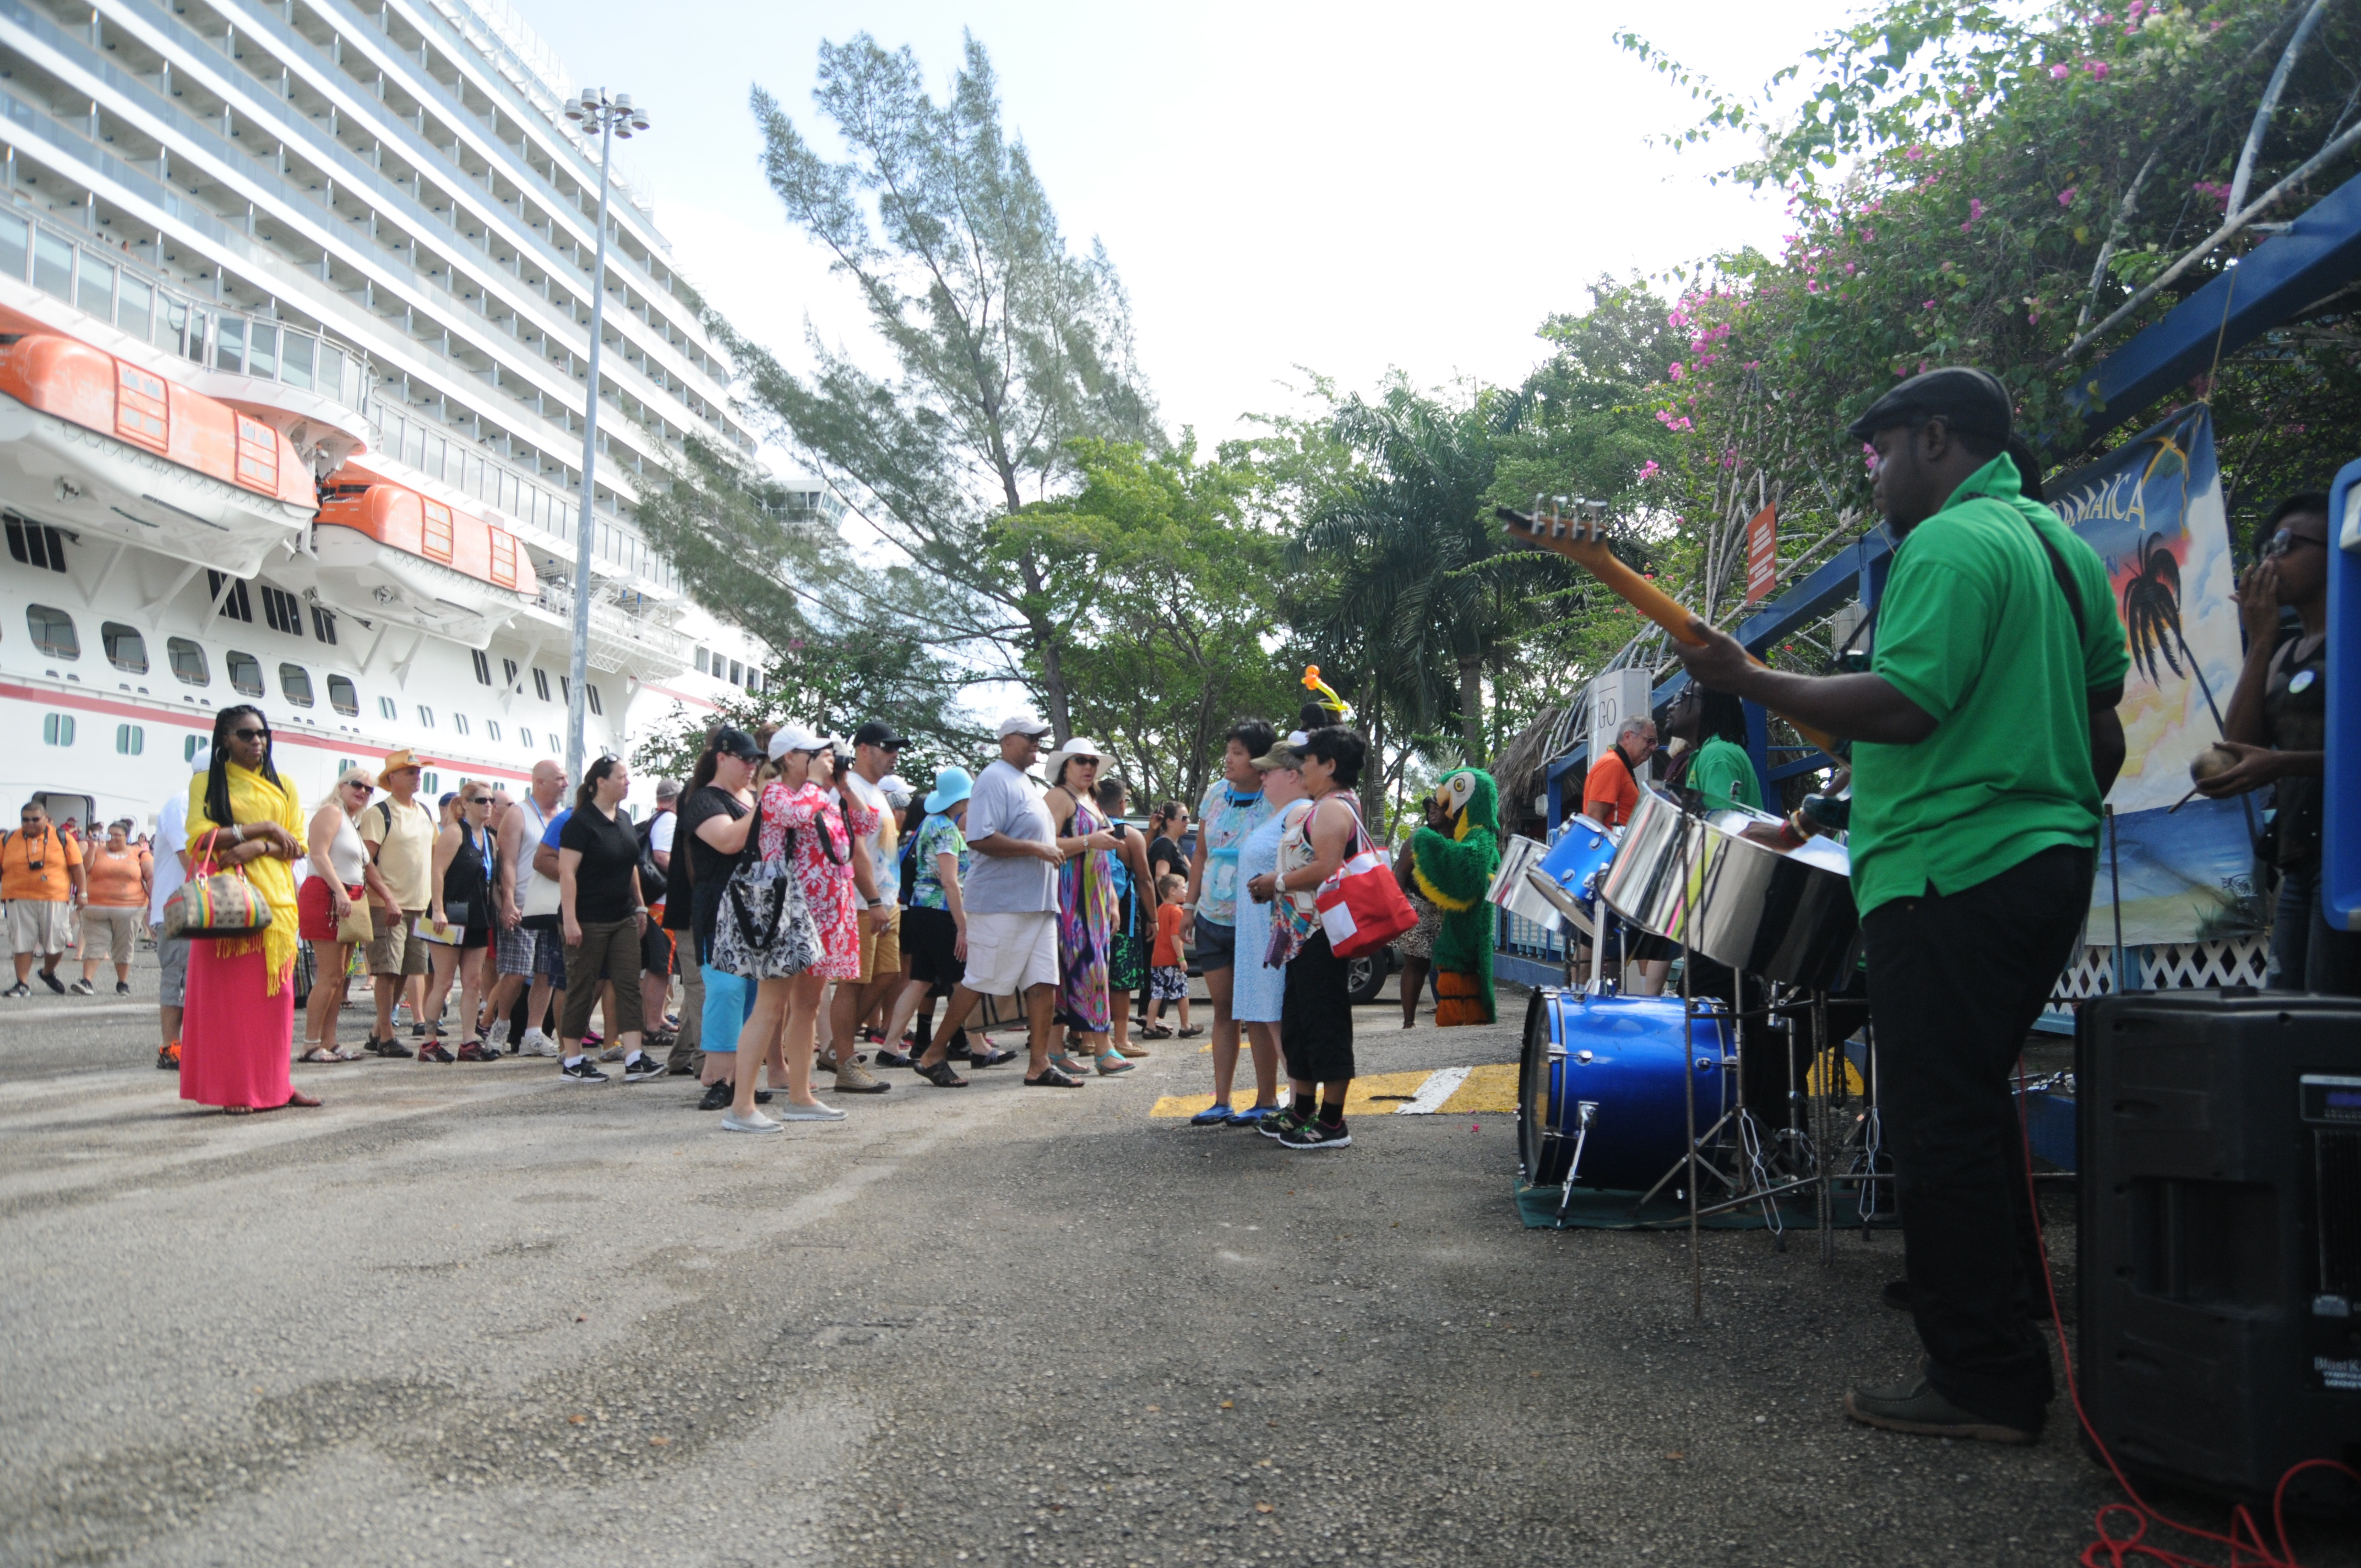 Irie, Mon! Carnival Magic Guests Receive Special Island Greeting During Montego Bay Call